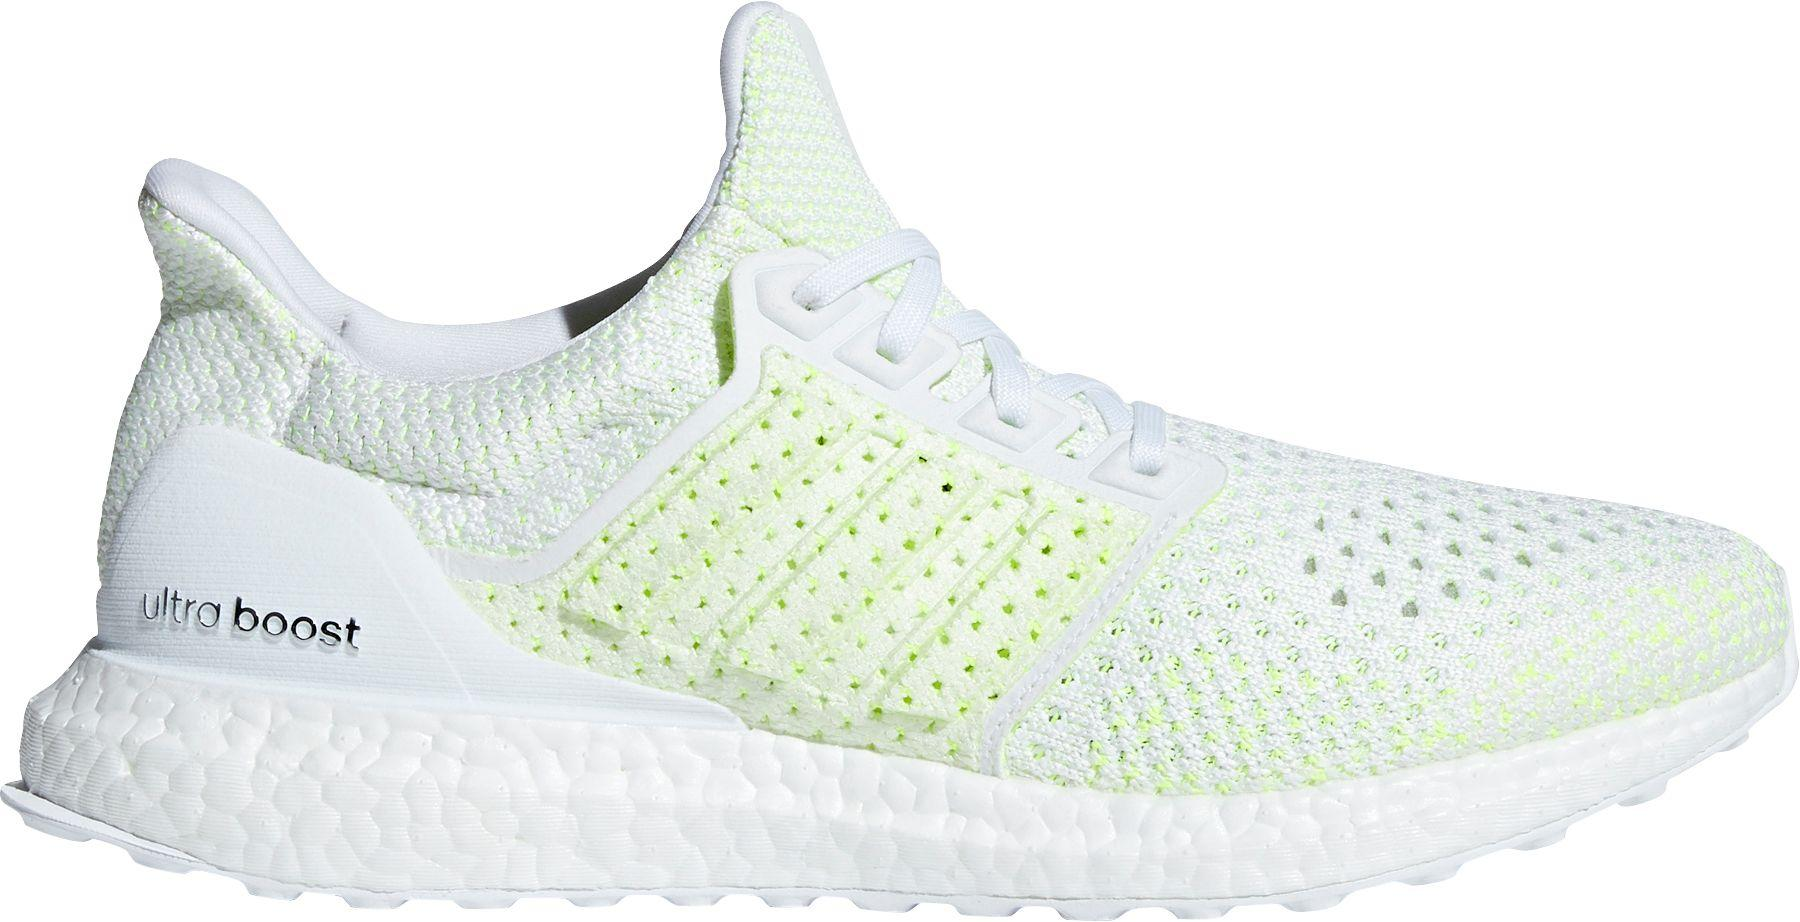 5c6804ff6 Lyst - adidas Ultraboost Clima Running Shoes in White for Men